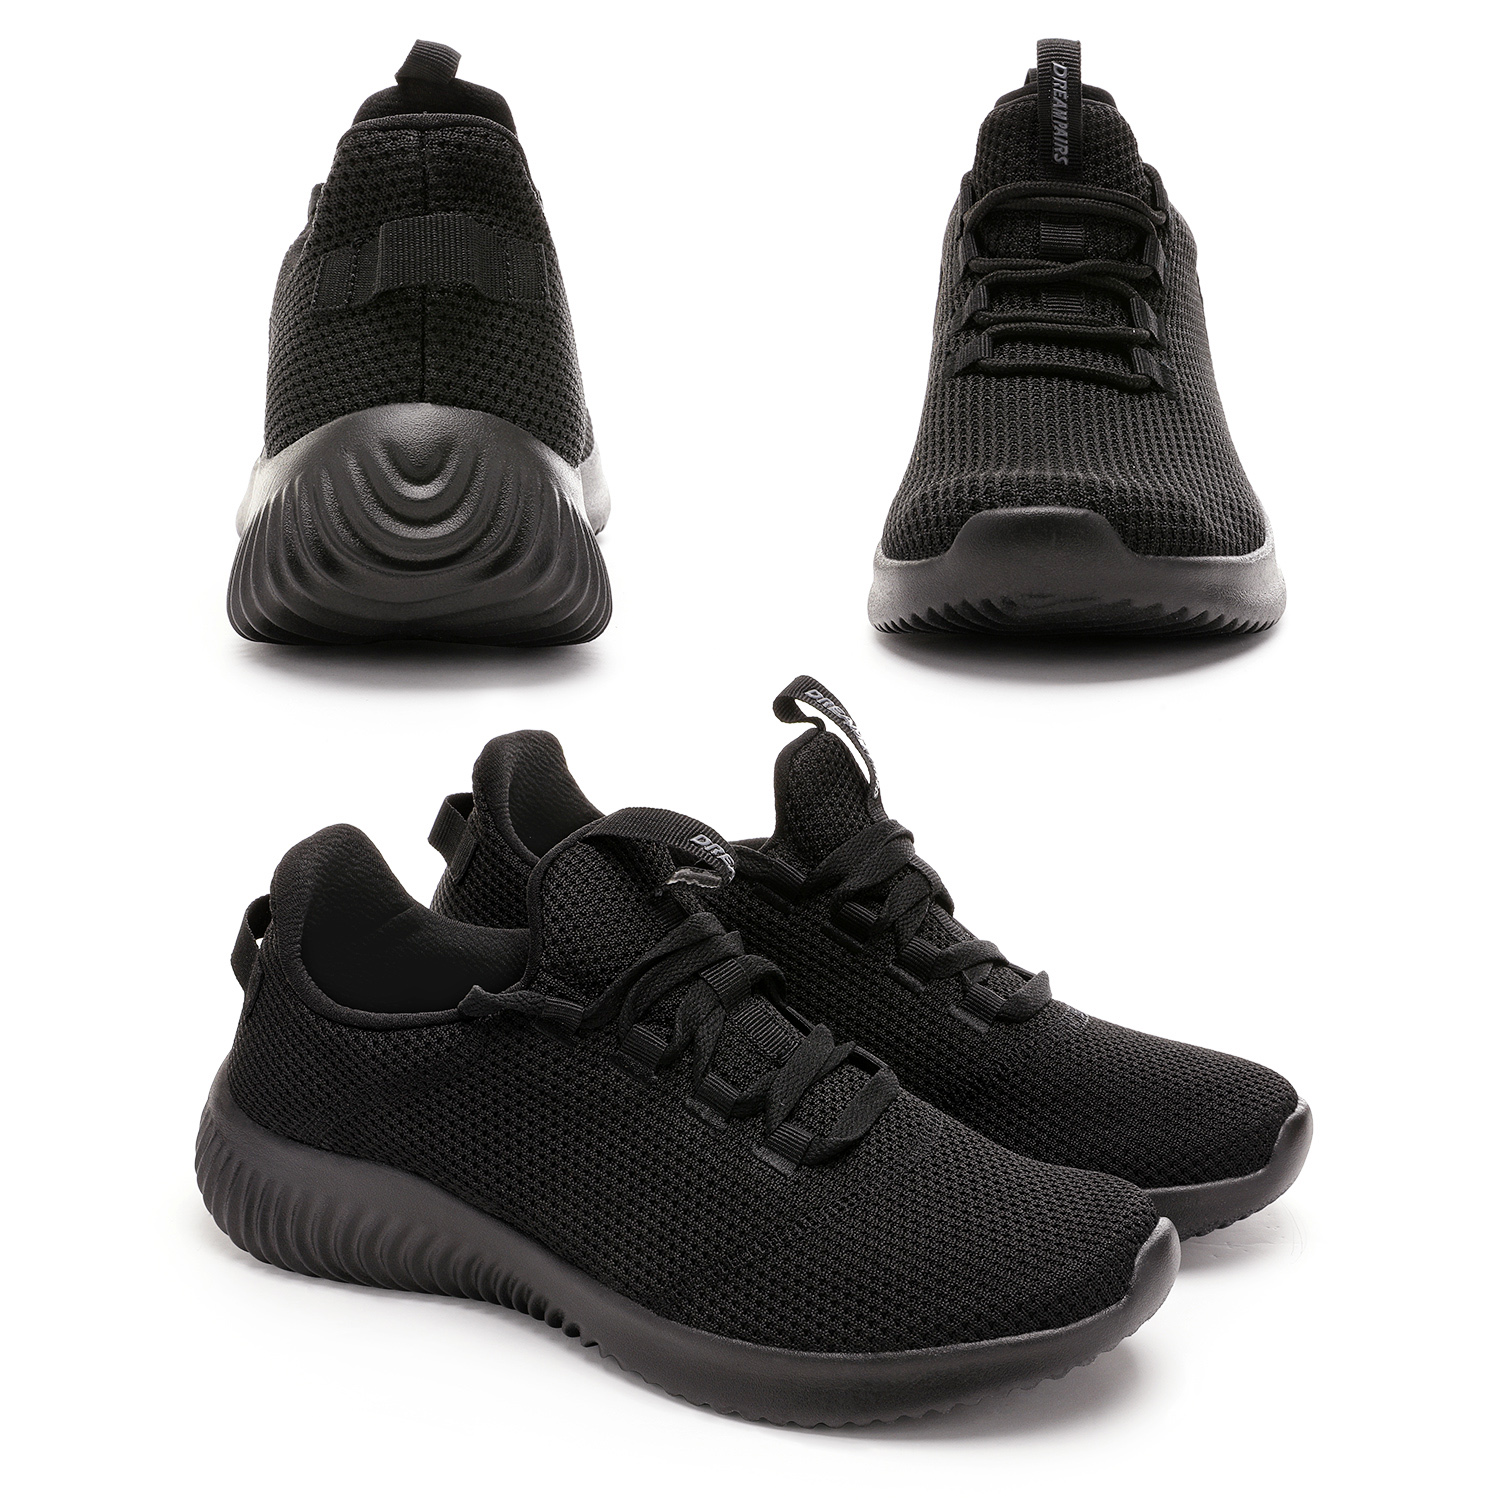 thumbnail 7 - Mens Running Shoes Lightweight Fashion Sneakers Comfort Walking Shoes